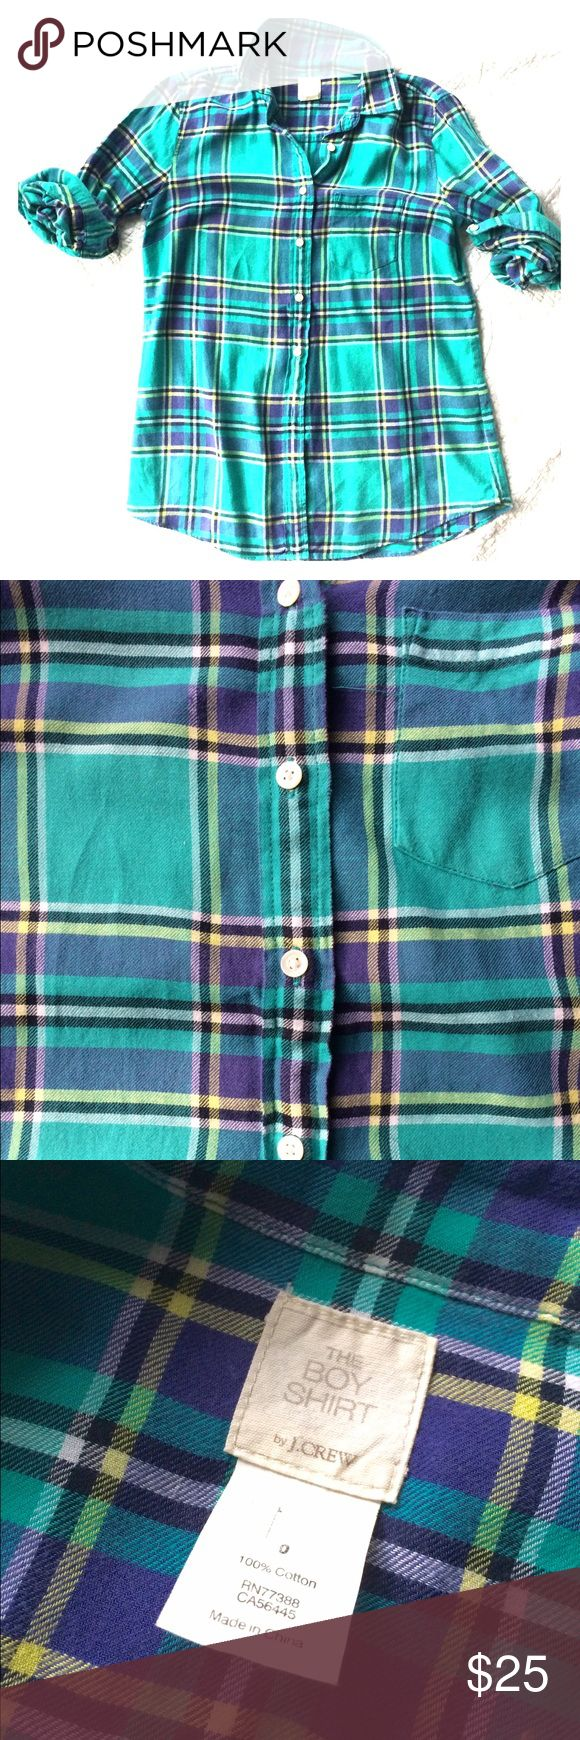 J.Crew button down Bright plaid soft lightweight flannel button down. Brightens any outfit on any day! Long sleeves can be rolled and collar popped to accentuate a fun statement necklace! Breast pocket. Long sleeve. J. Crew Tops Button Down Shirts